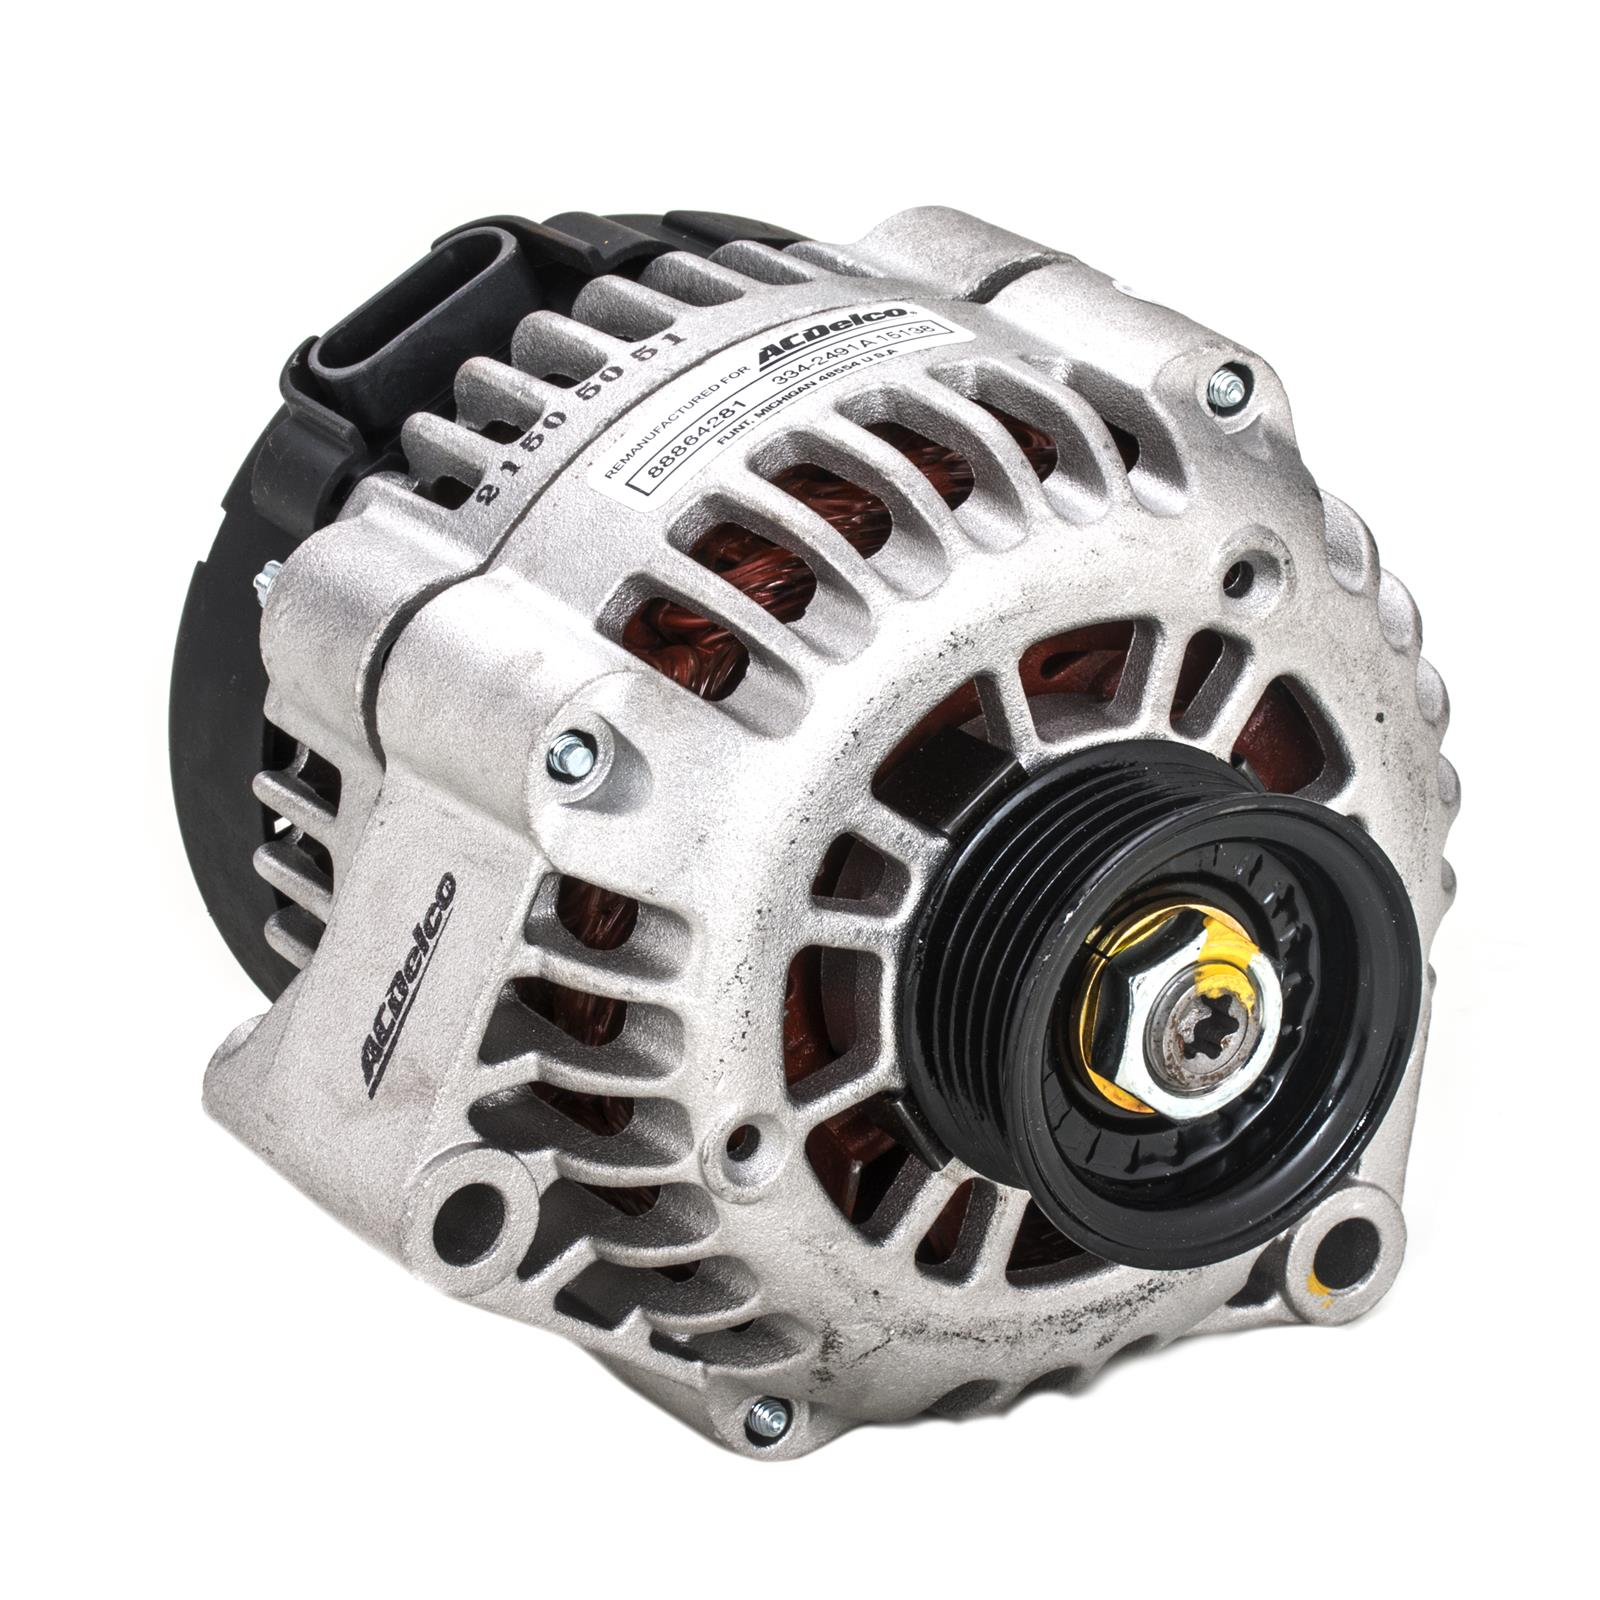 hight resolution of acdelco gm oe remanufactured alternators 88864281 free shipping on orders over 99 at summit racing